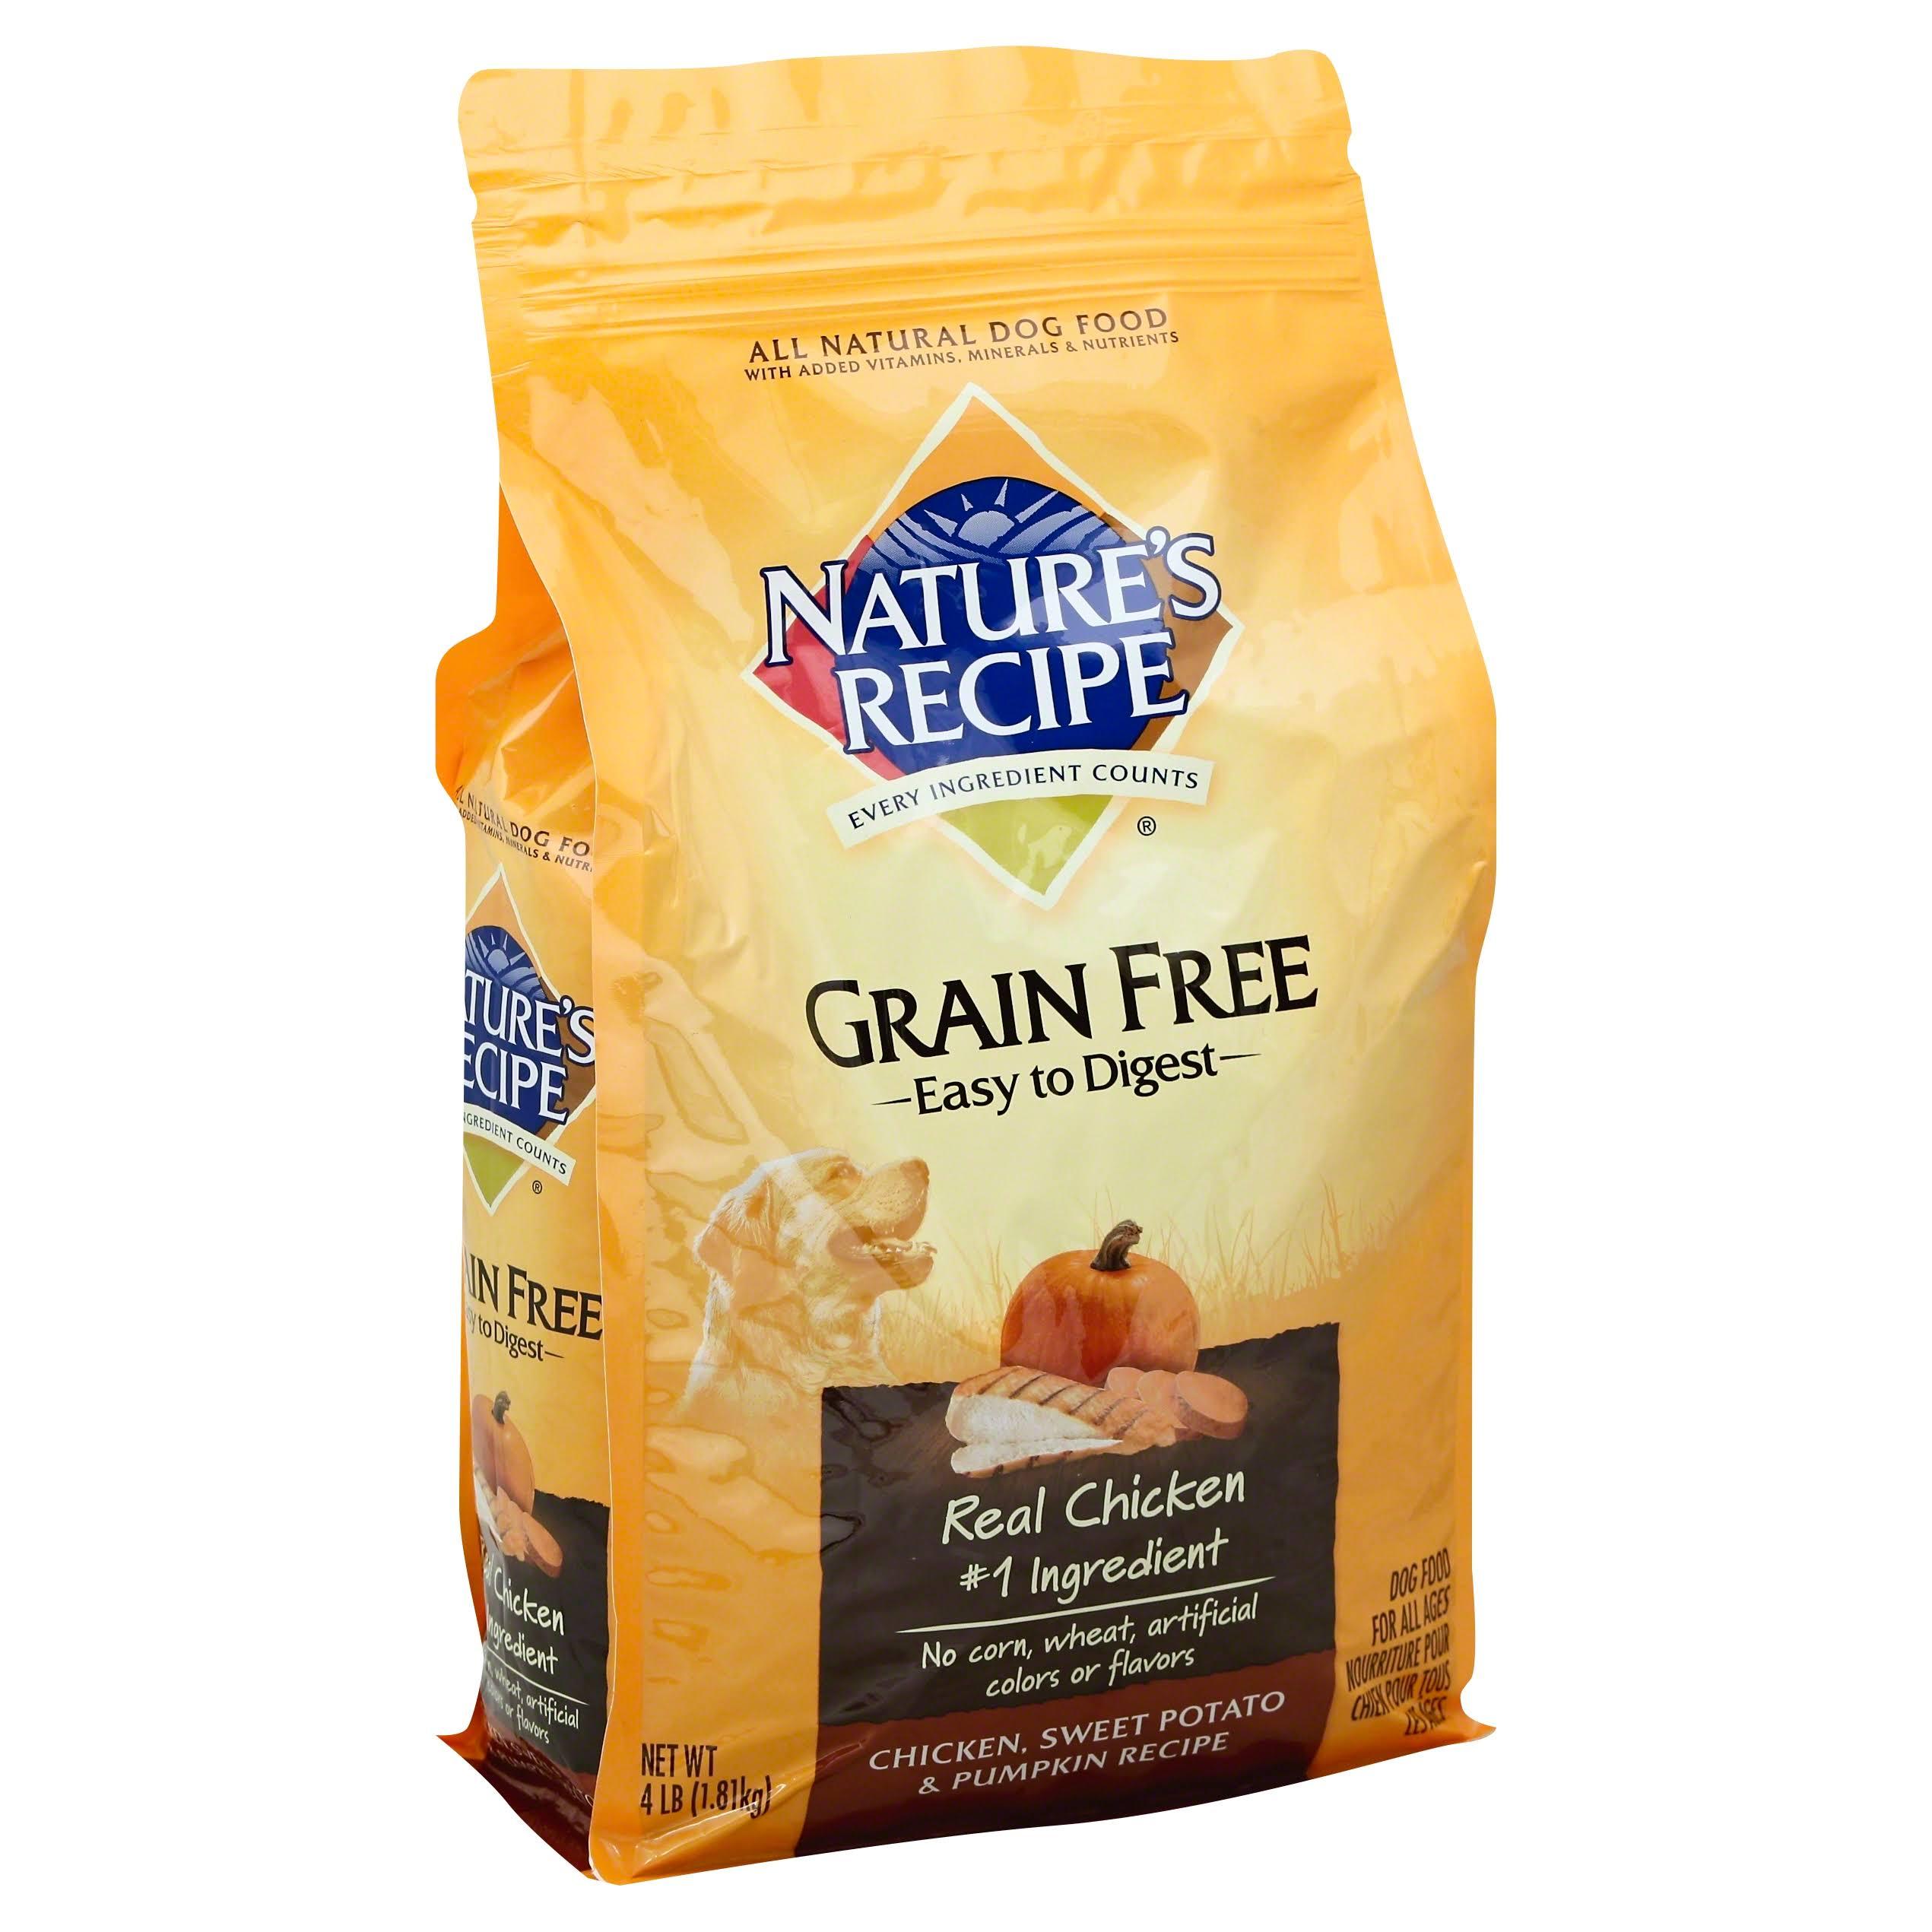 Nature's Recipe Grain Free Easy to Digest Dog Food - Chicken, Sweet Potato and Pumpkin Recipe, 4lbs